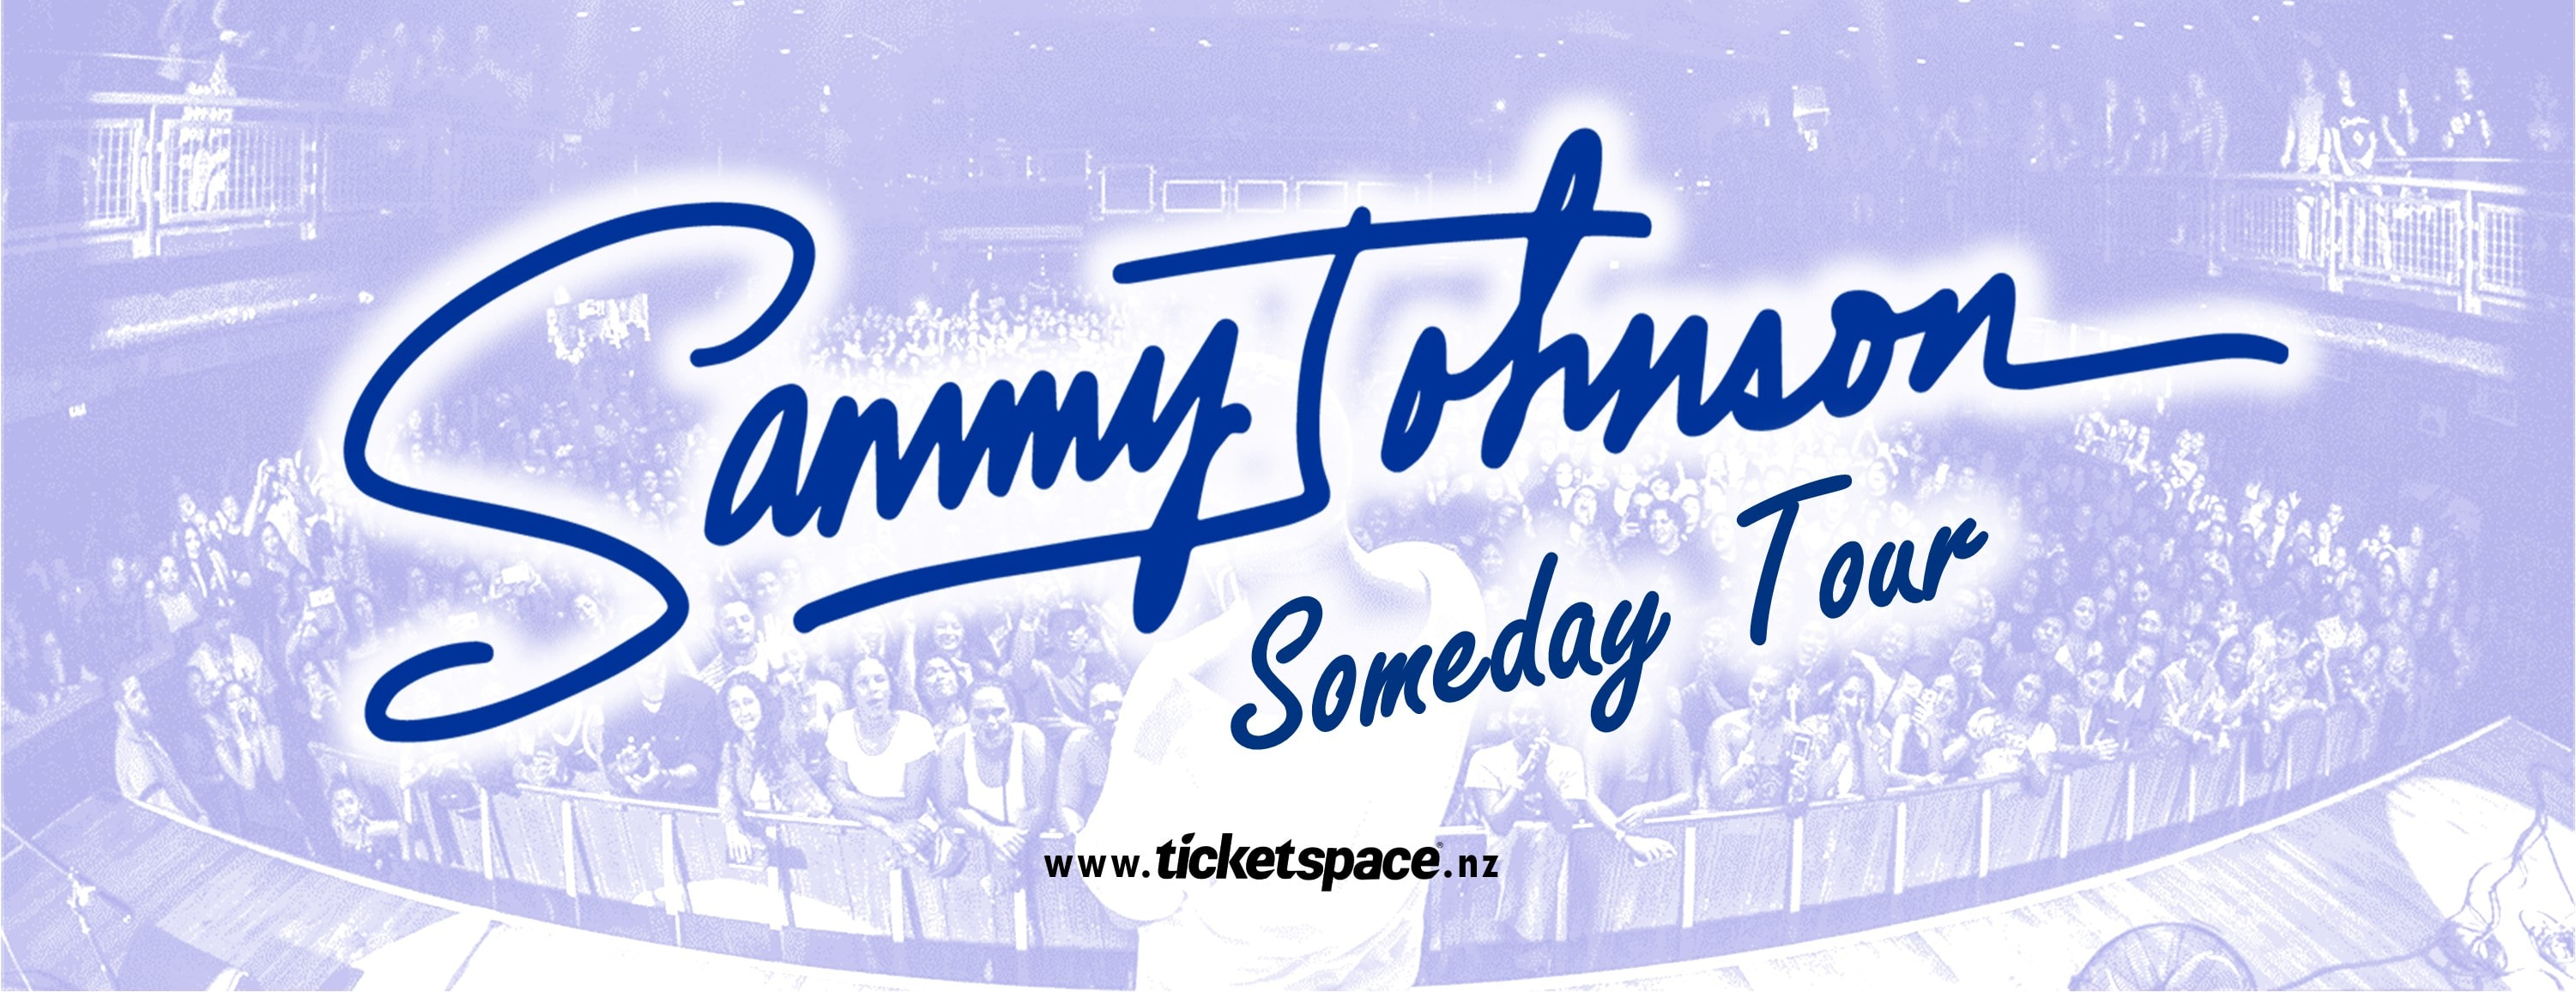 Tickets for SAMMY J 'Someday Tour' - Taumarunui in Manunui from Ticketspace